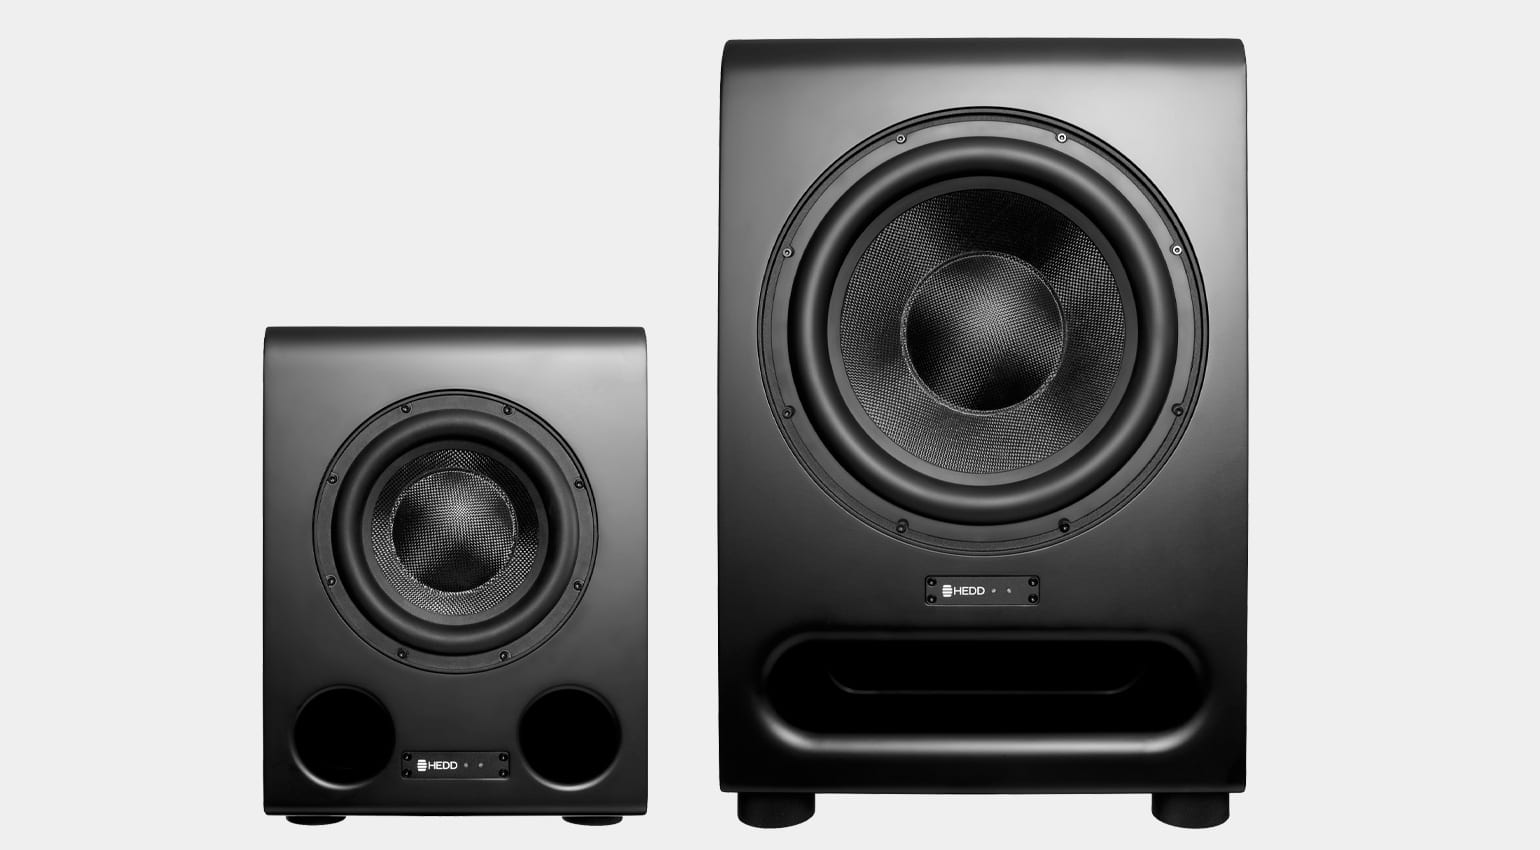 HEDD BASS 08 and BASS 12 subwoofers